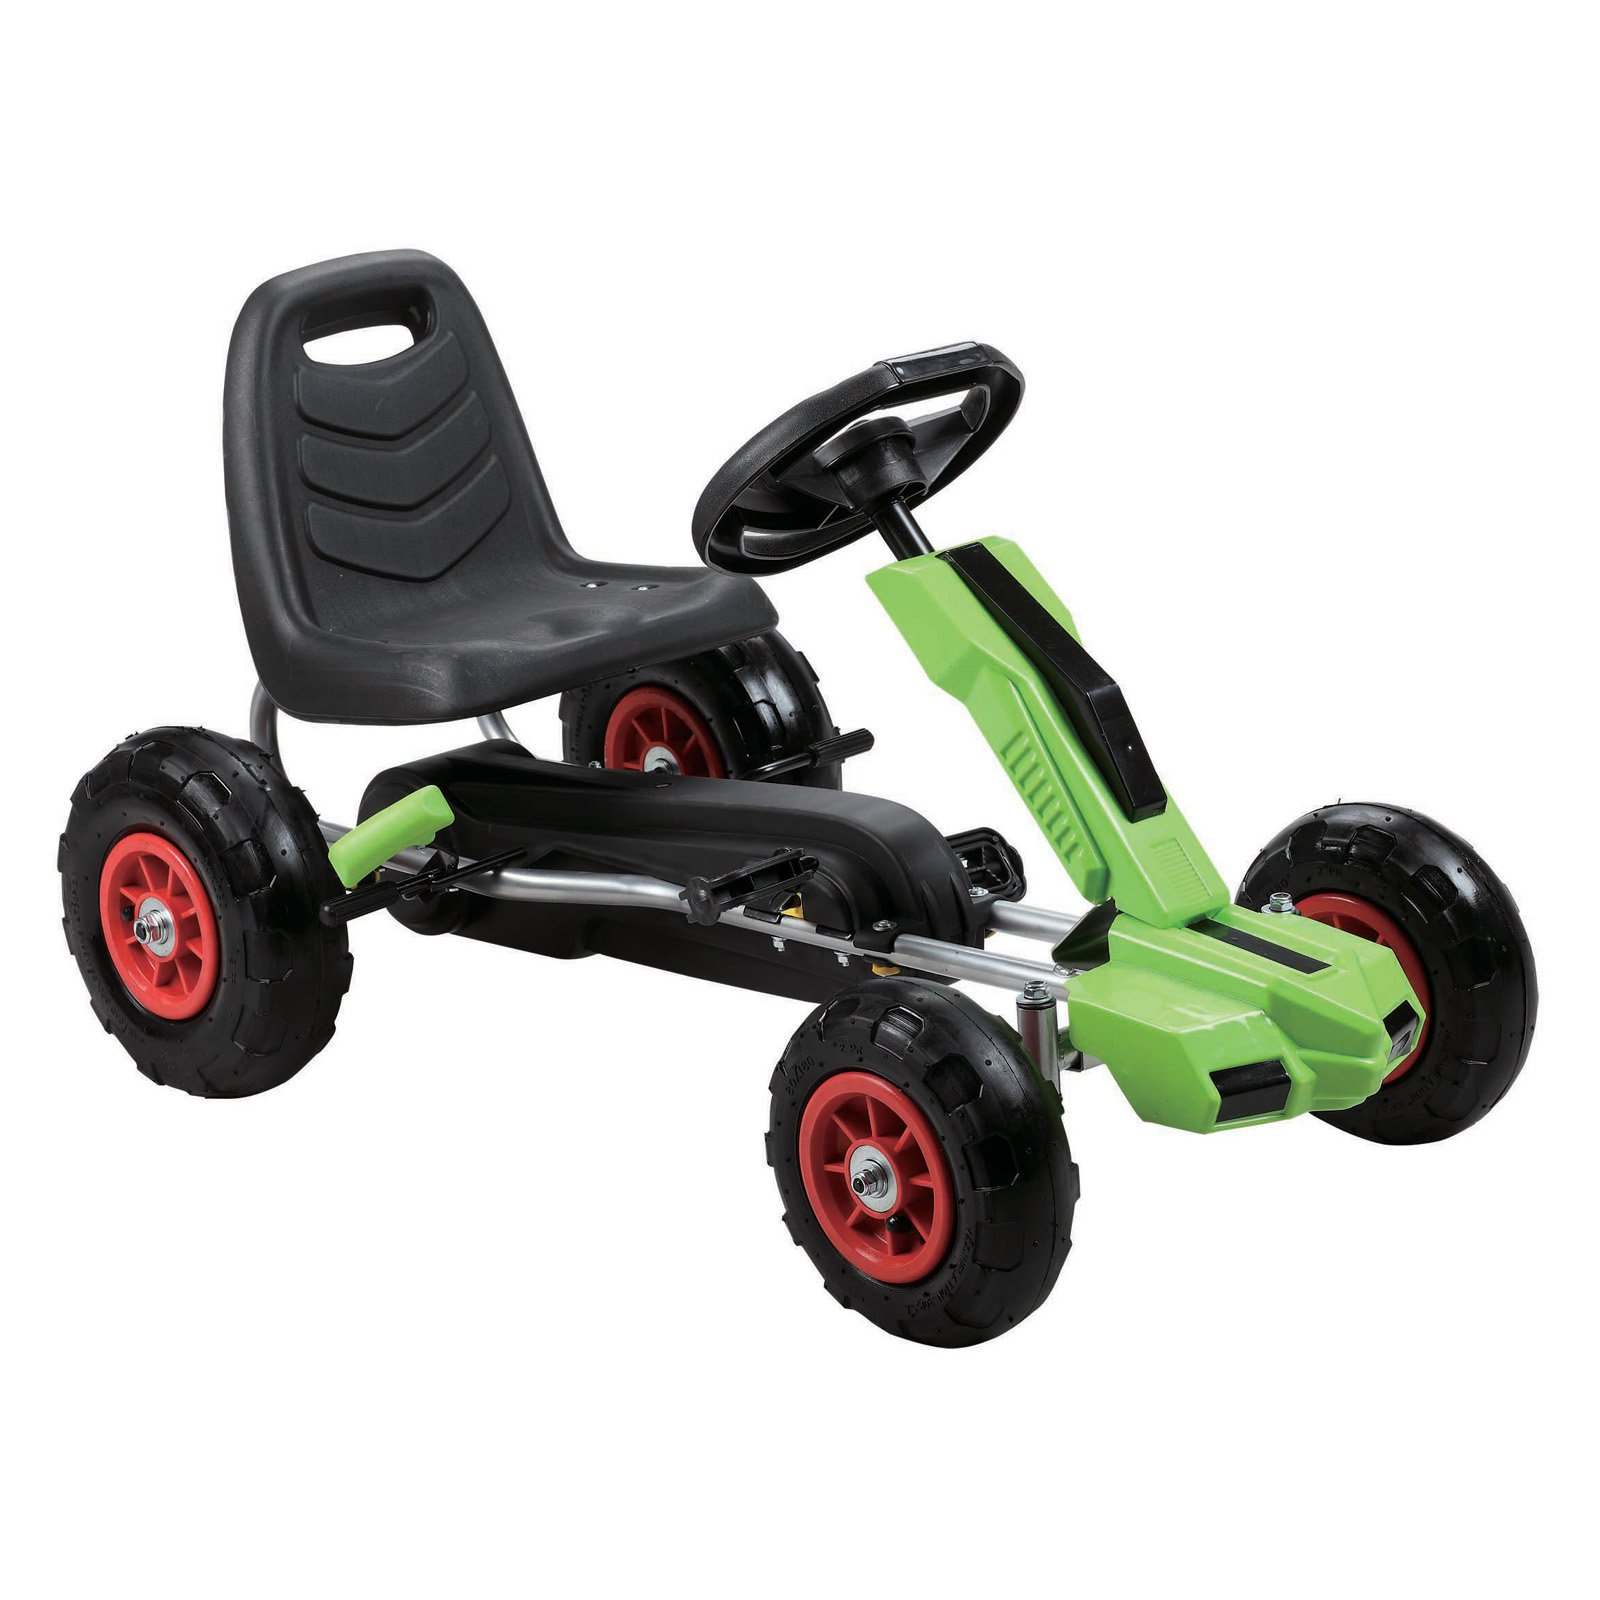 Vroom Rider Power Pedal Go Kart Riding Toy